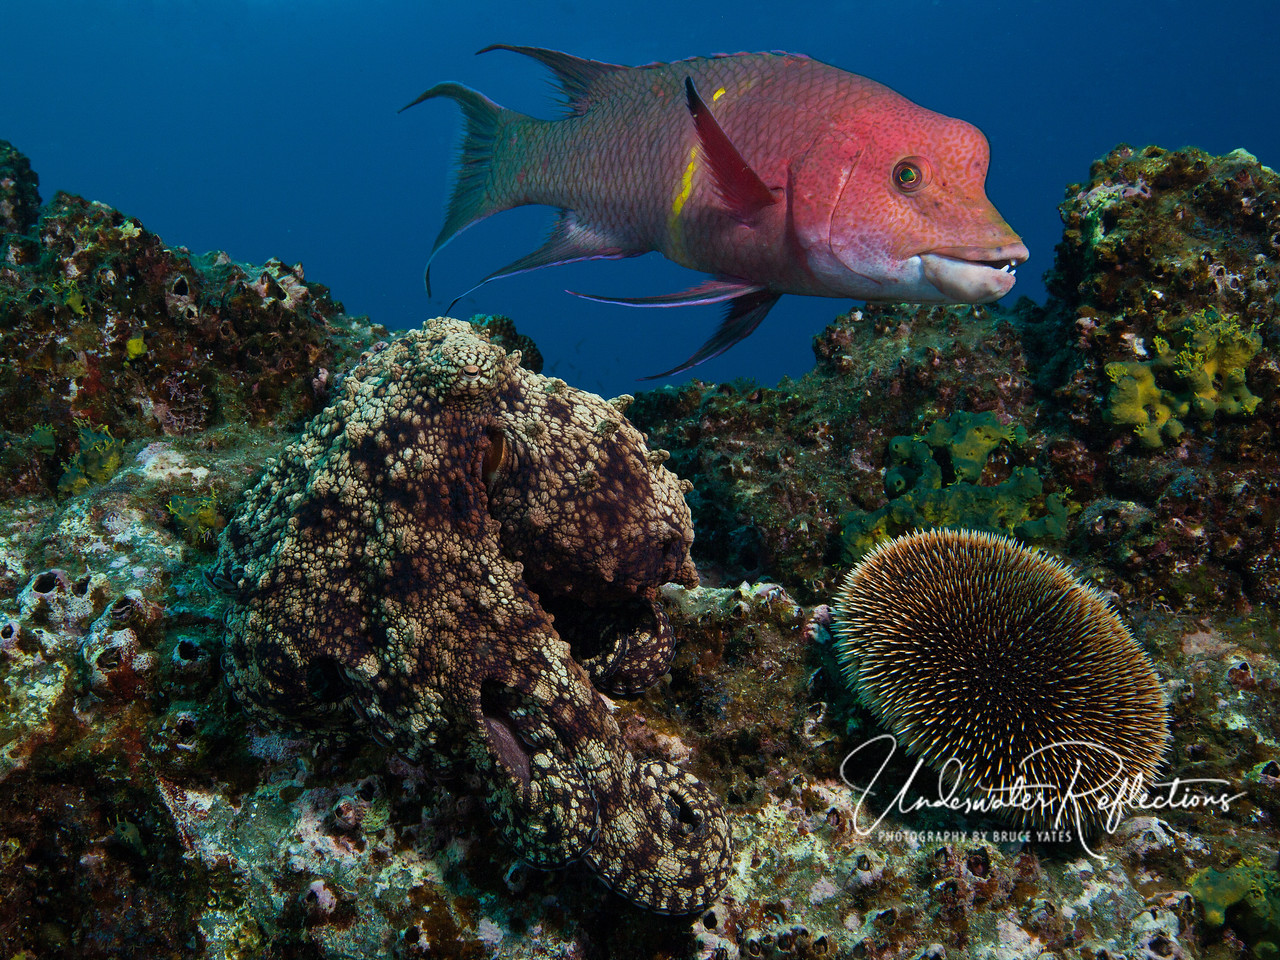 The colorful Long-fin Hogfish is eye-catching, but the real subject of this photo is the octopus below at left.  Octopuses are masters of camouflage, changing their color and texture to mimic their surroundings.